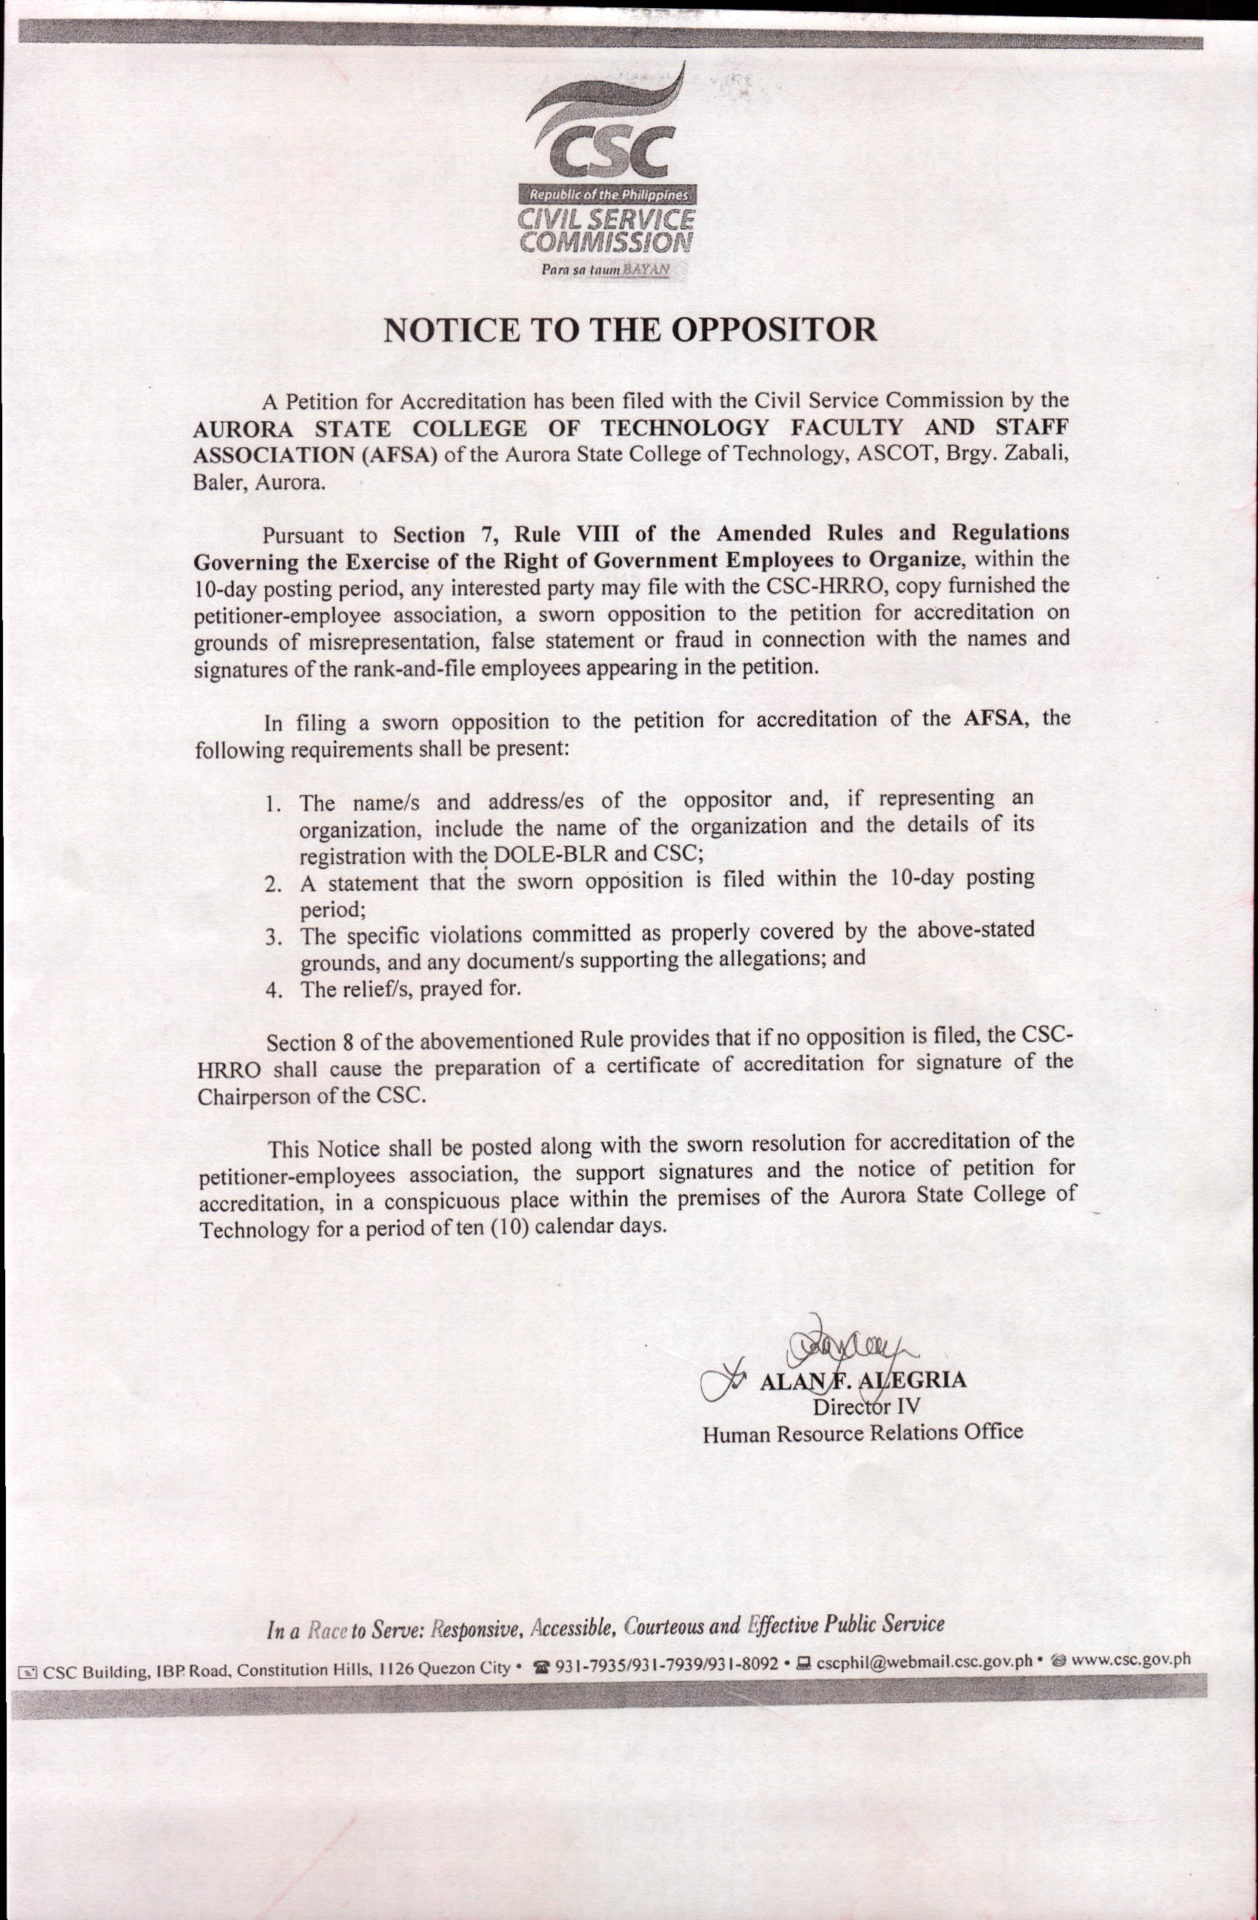 Notice to the Oppositor